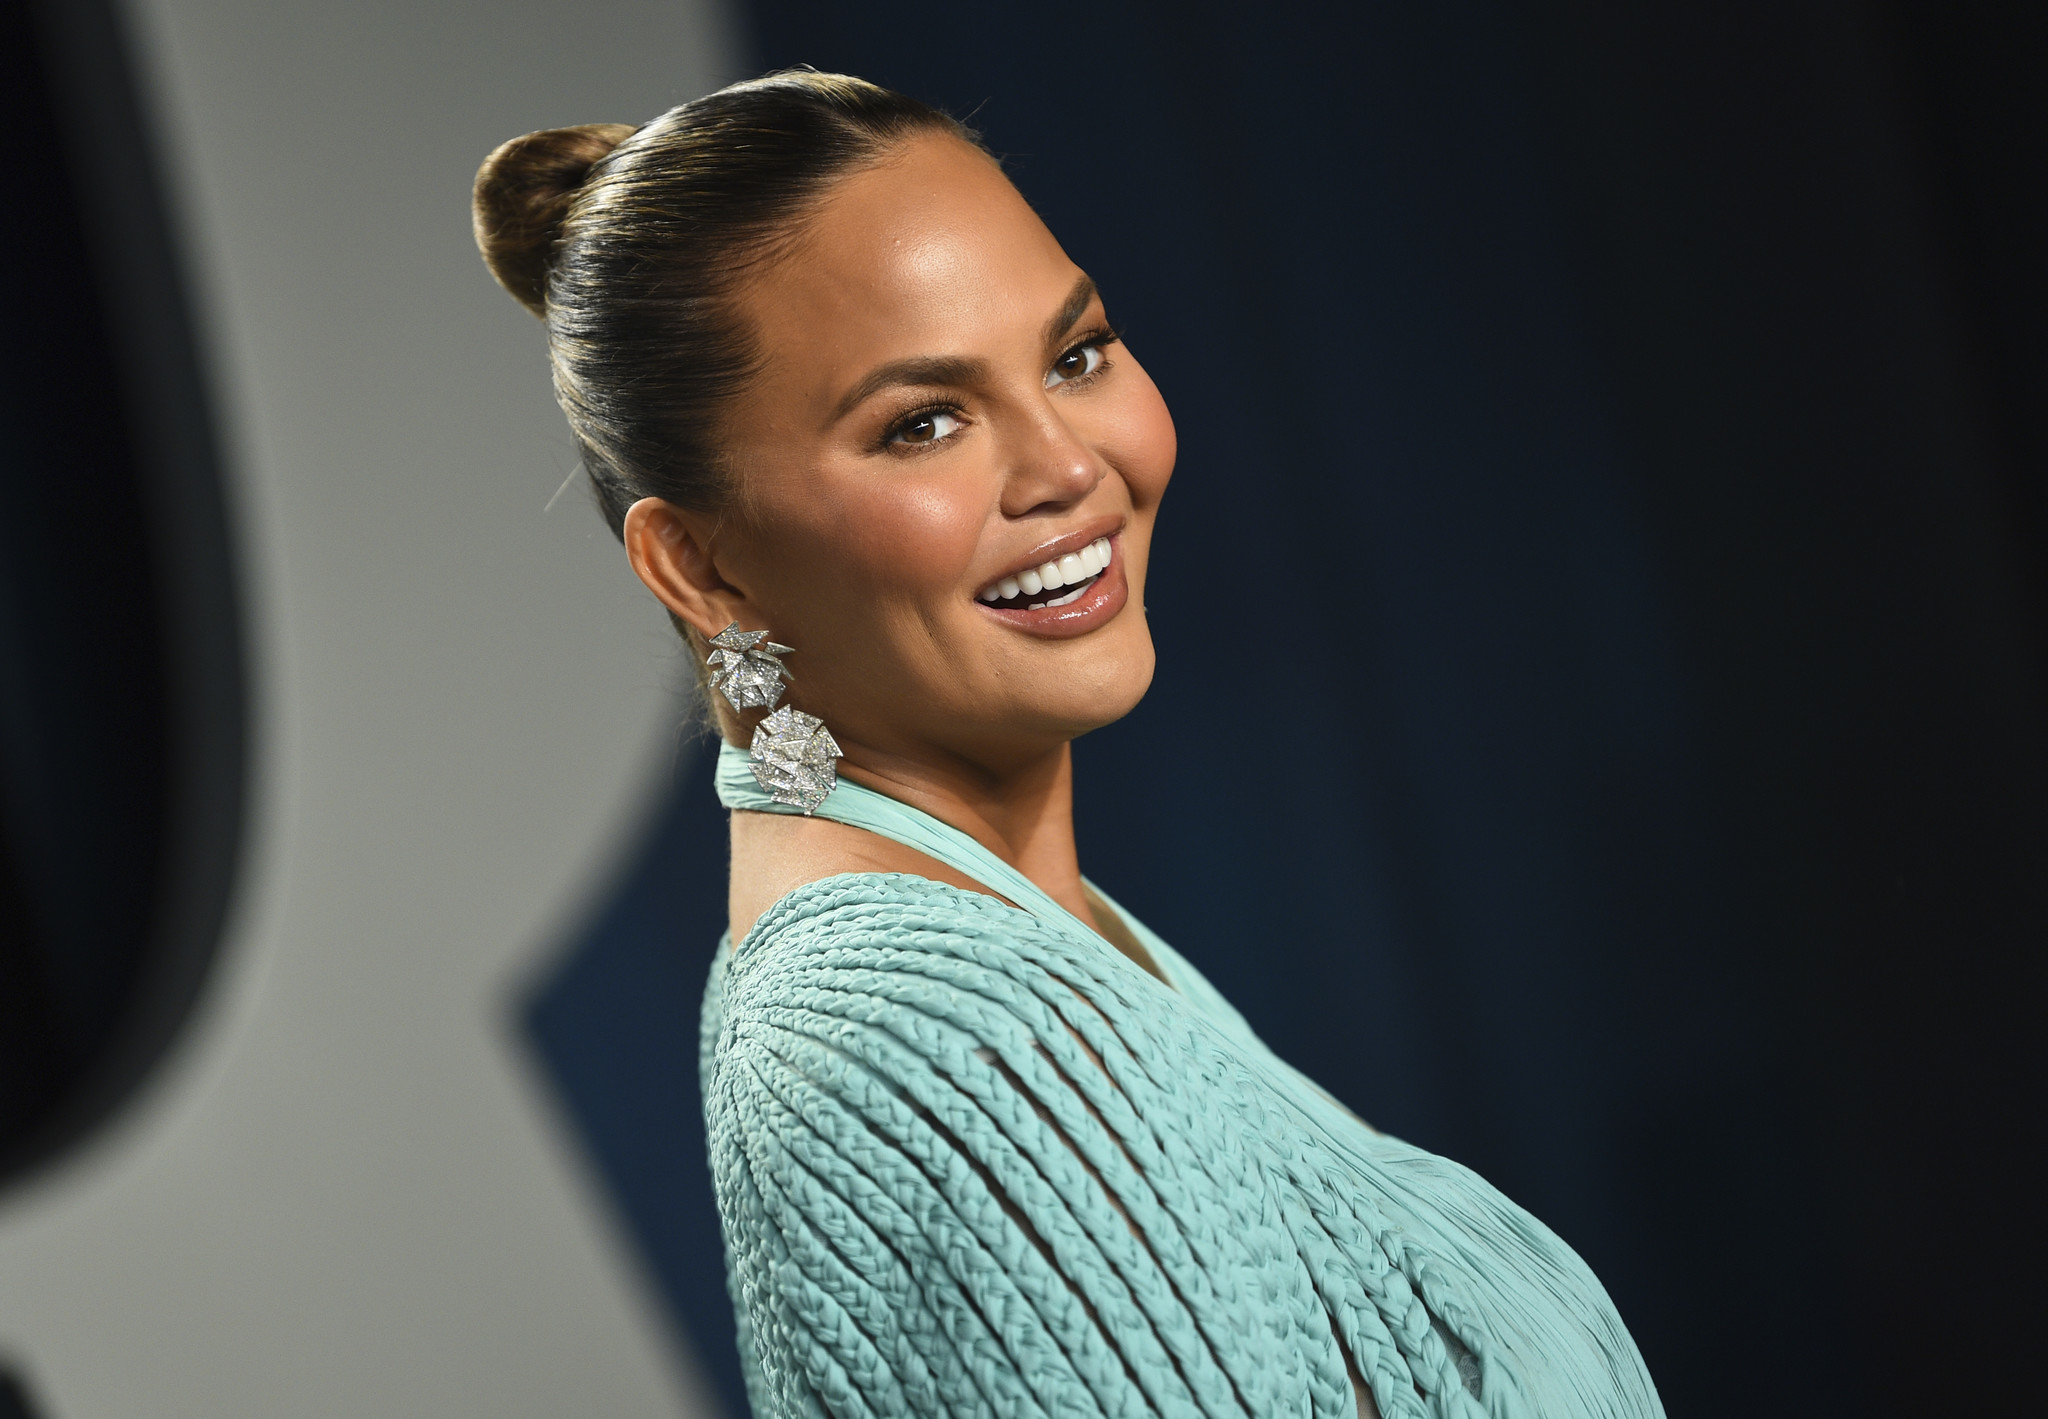 Chrissy Teigen's latest gig is a serious one — the judge of her very own courtroom series 'Chrissy's Court'